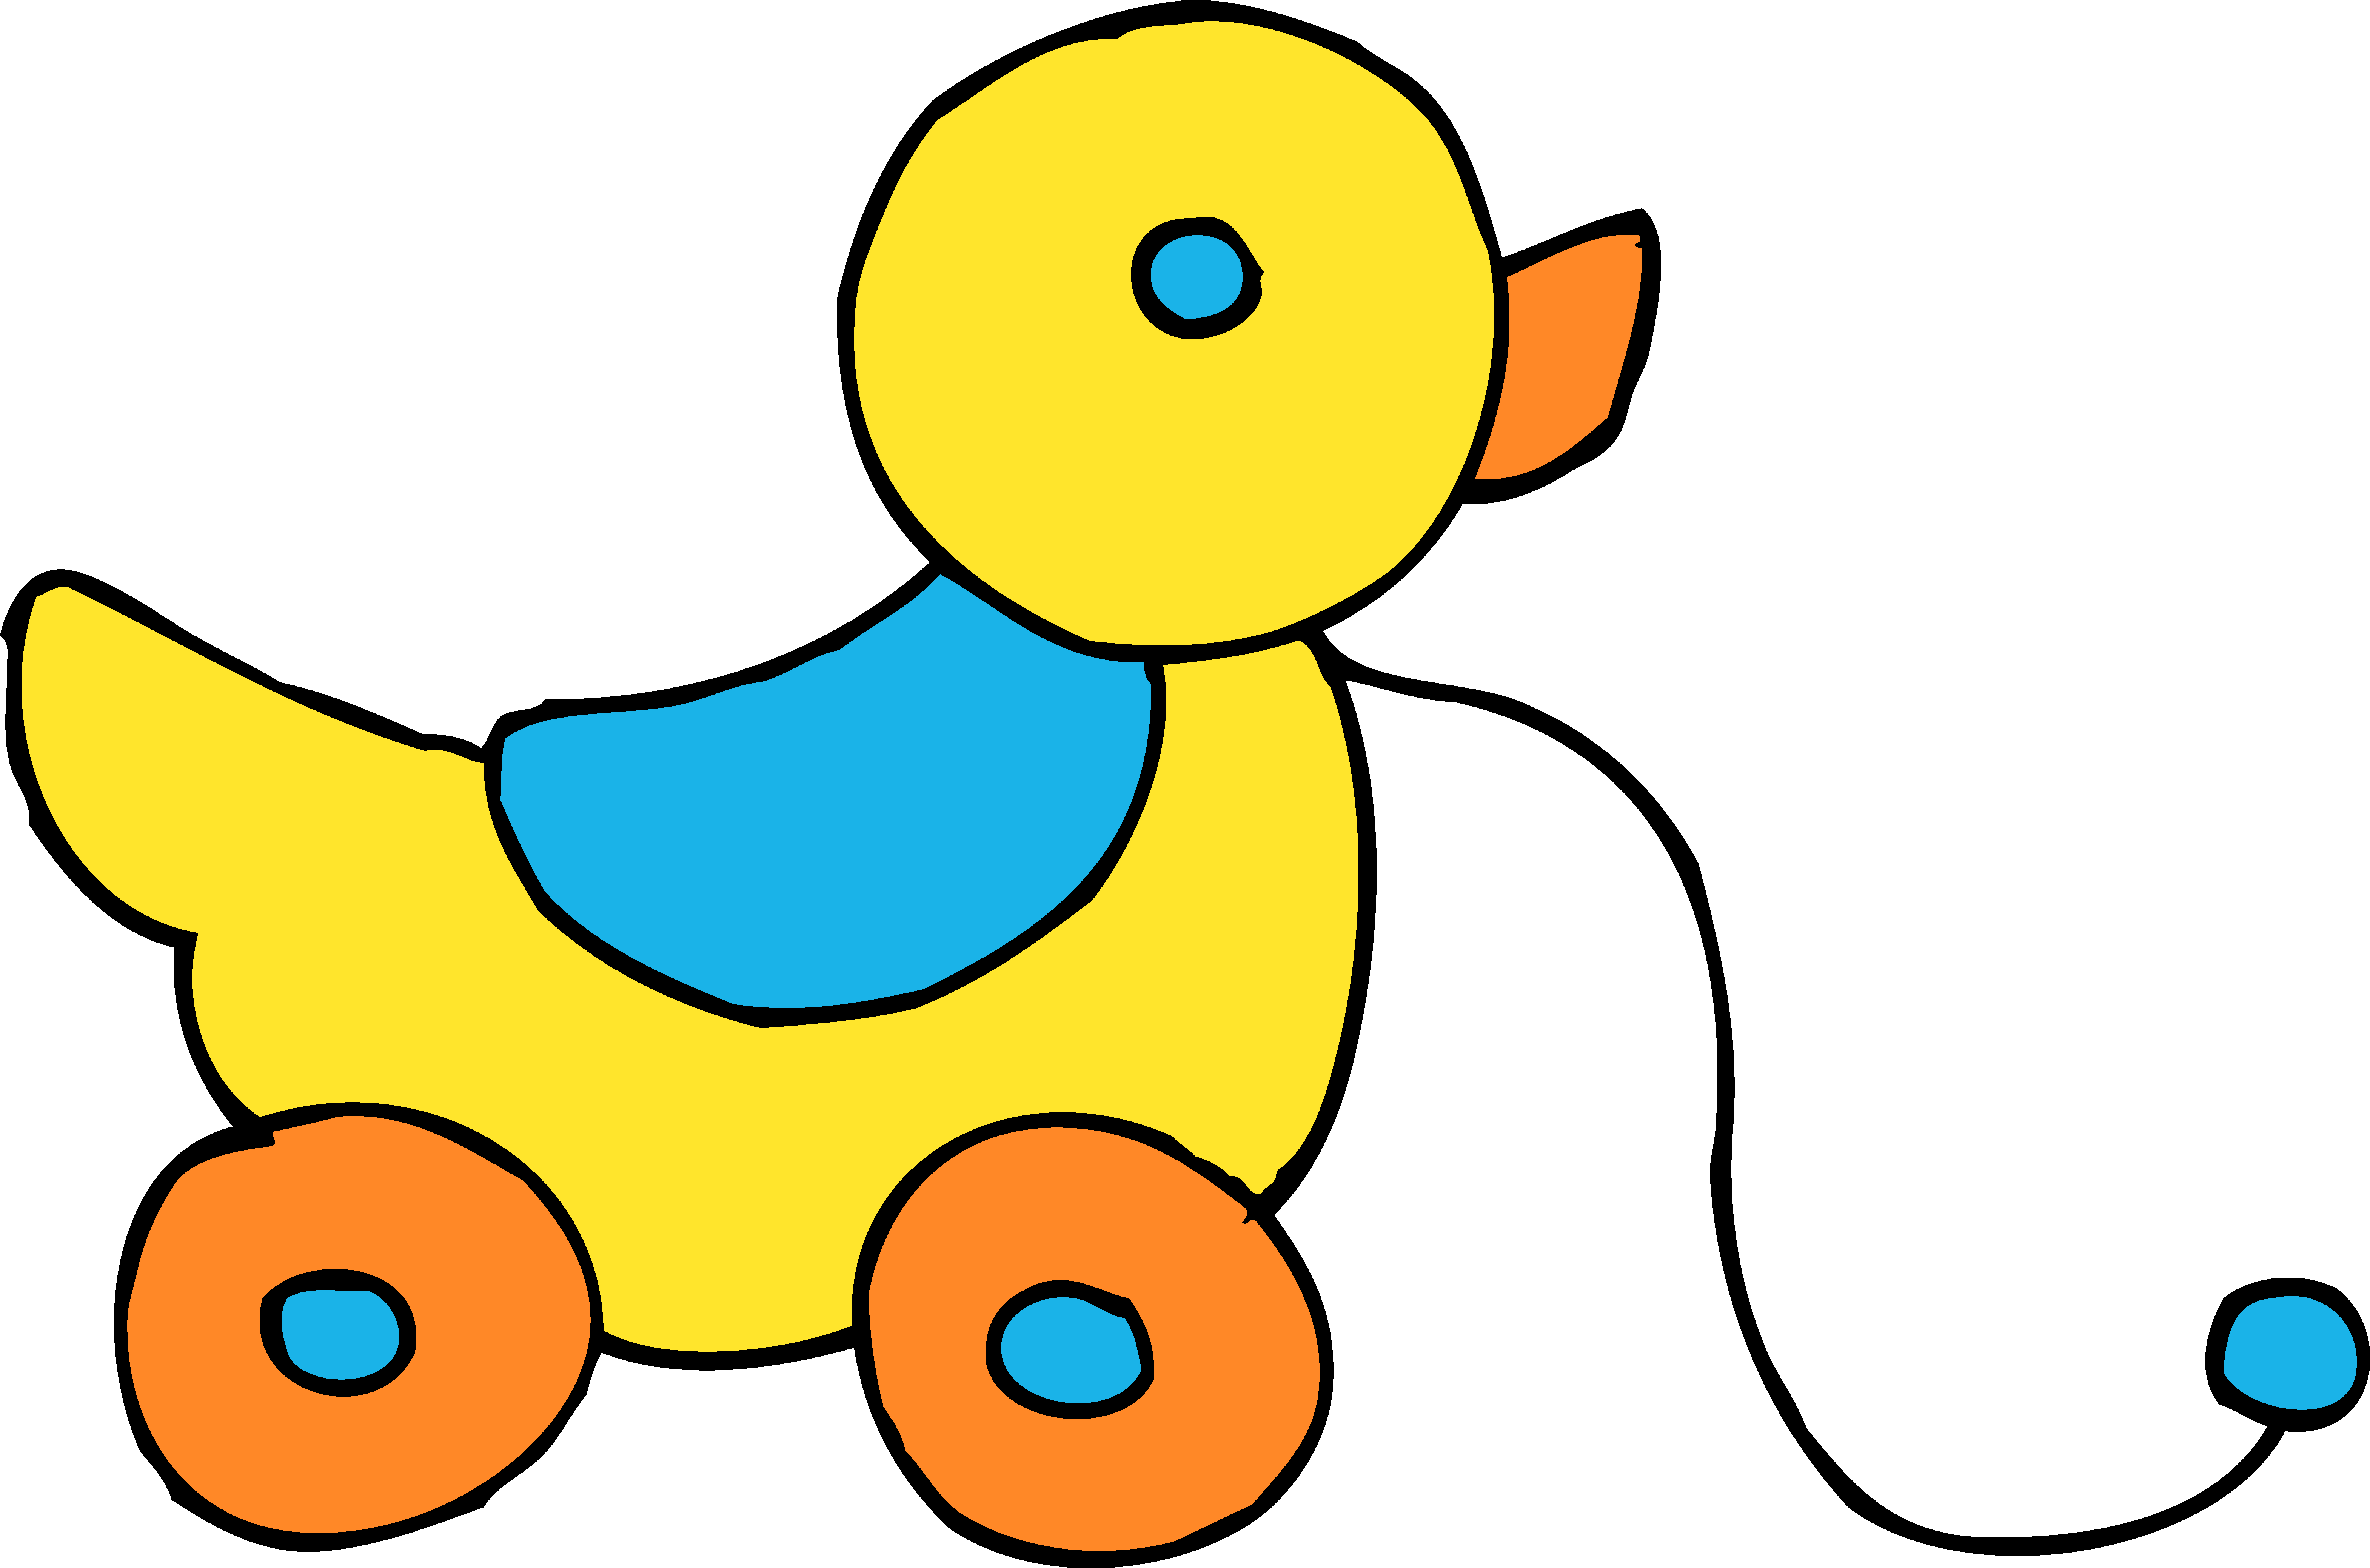 Toy clipart messy. Rolling yellow ducky free